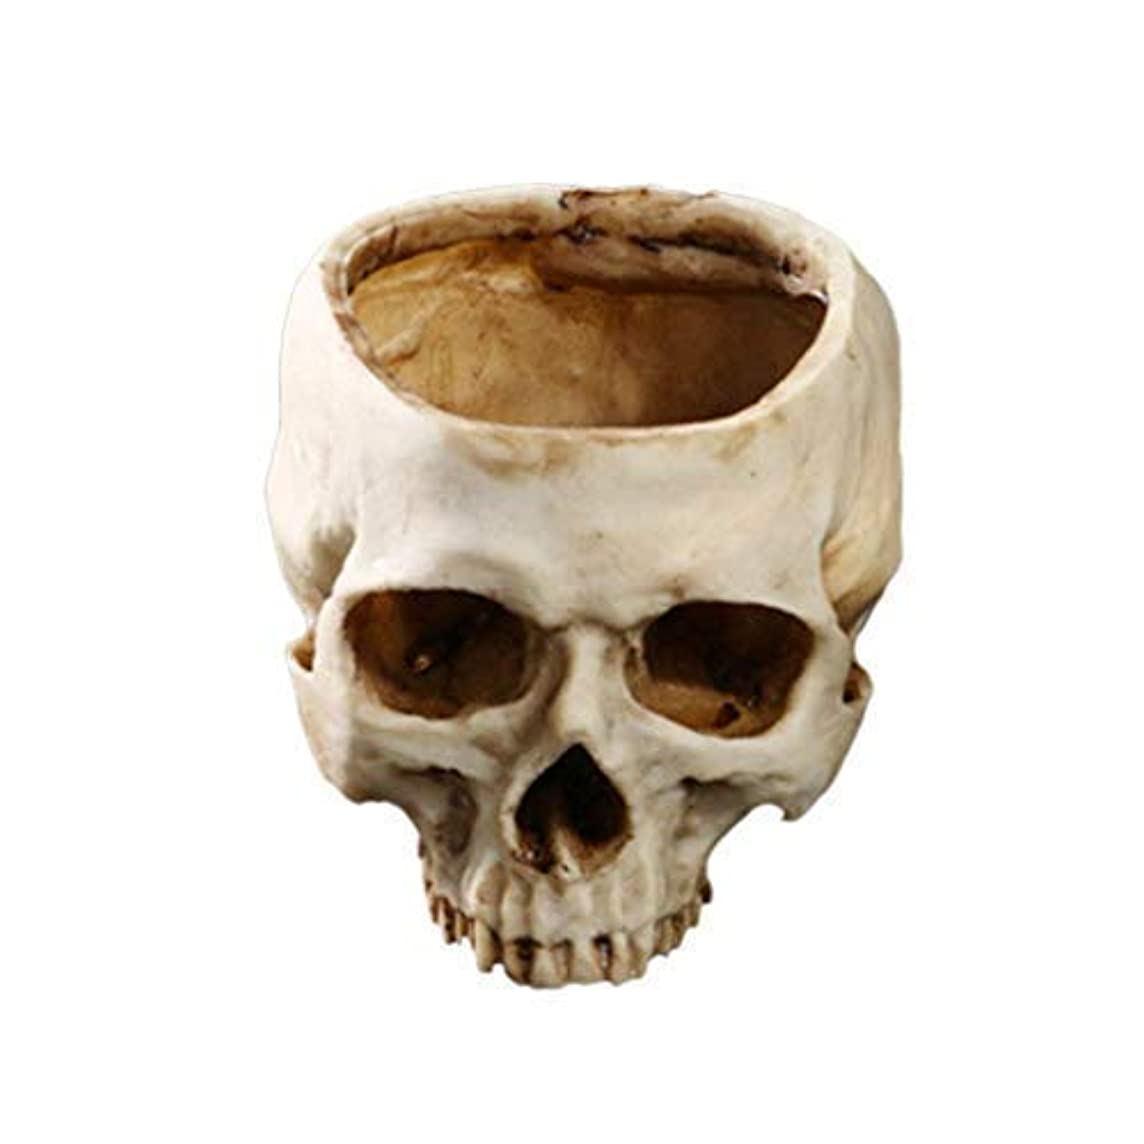 Yundxi Artificial Resin Human Skull Design Flower Pot Planter Container Skull Bowl for Home Bar Decoration